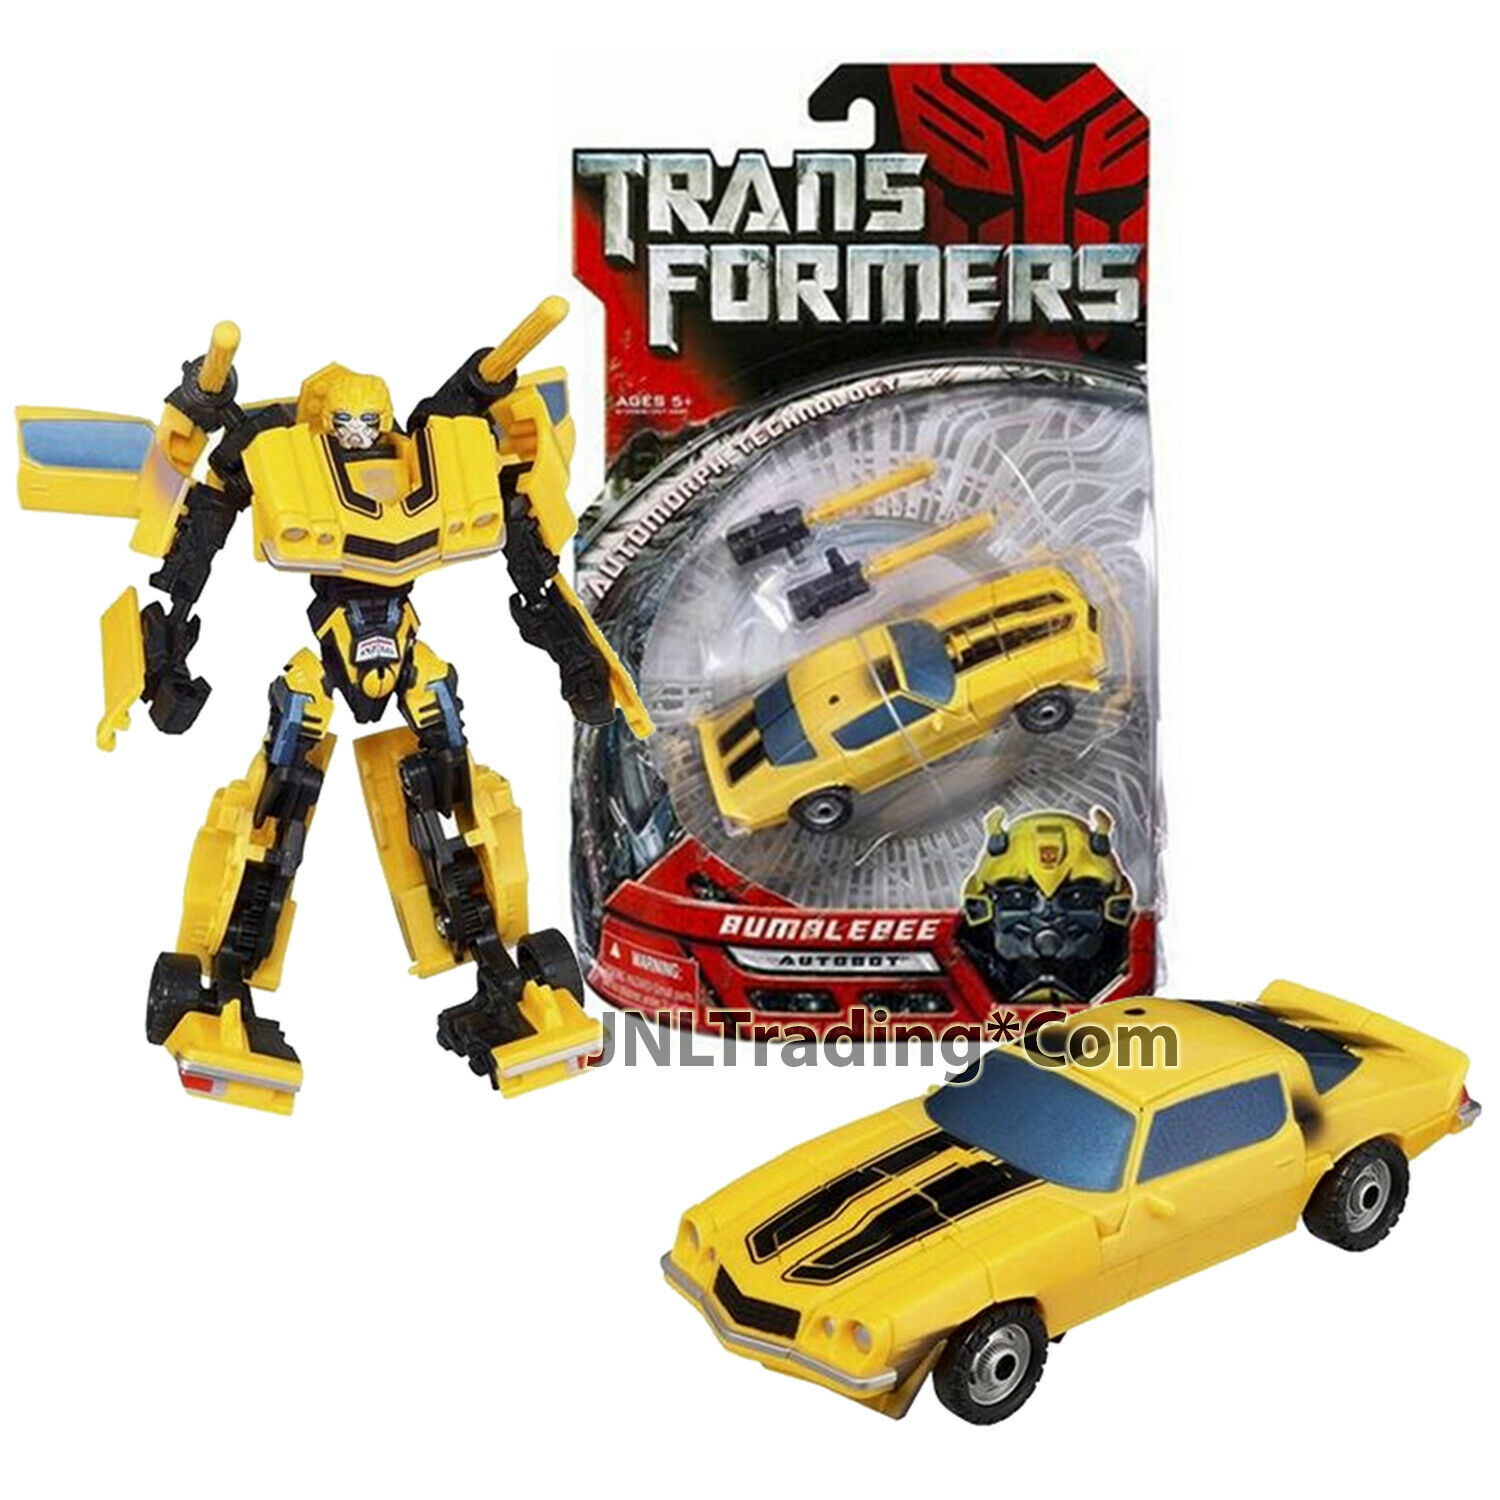 2006 Year Hasbro Transformers 1st Film Serie Deluxe classeE 6 Autobot Bumblebee